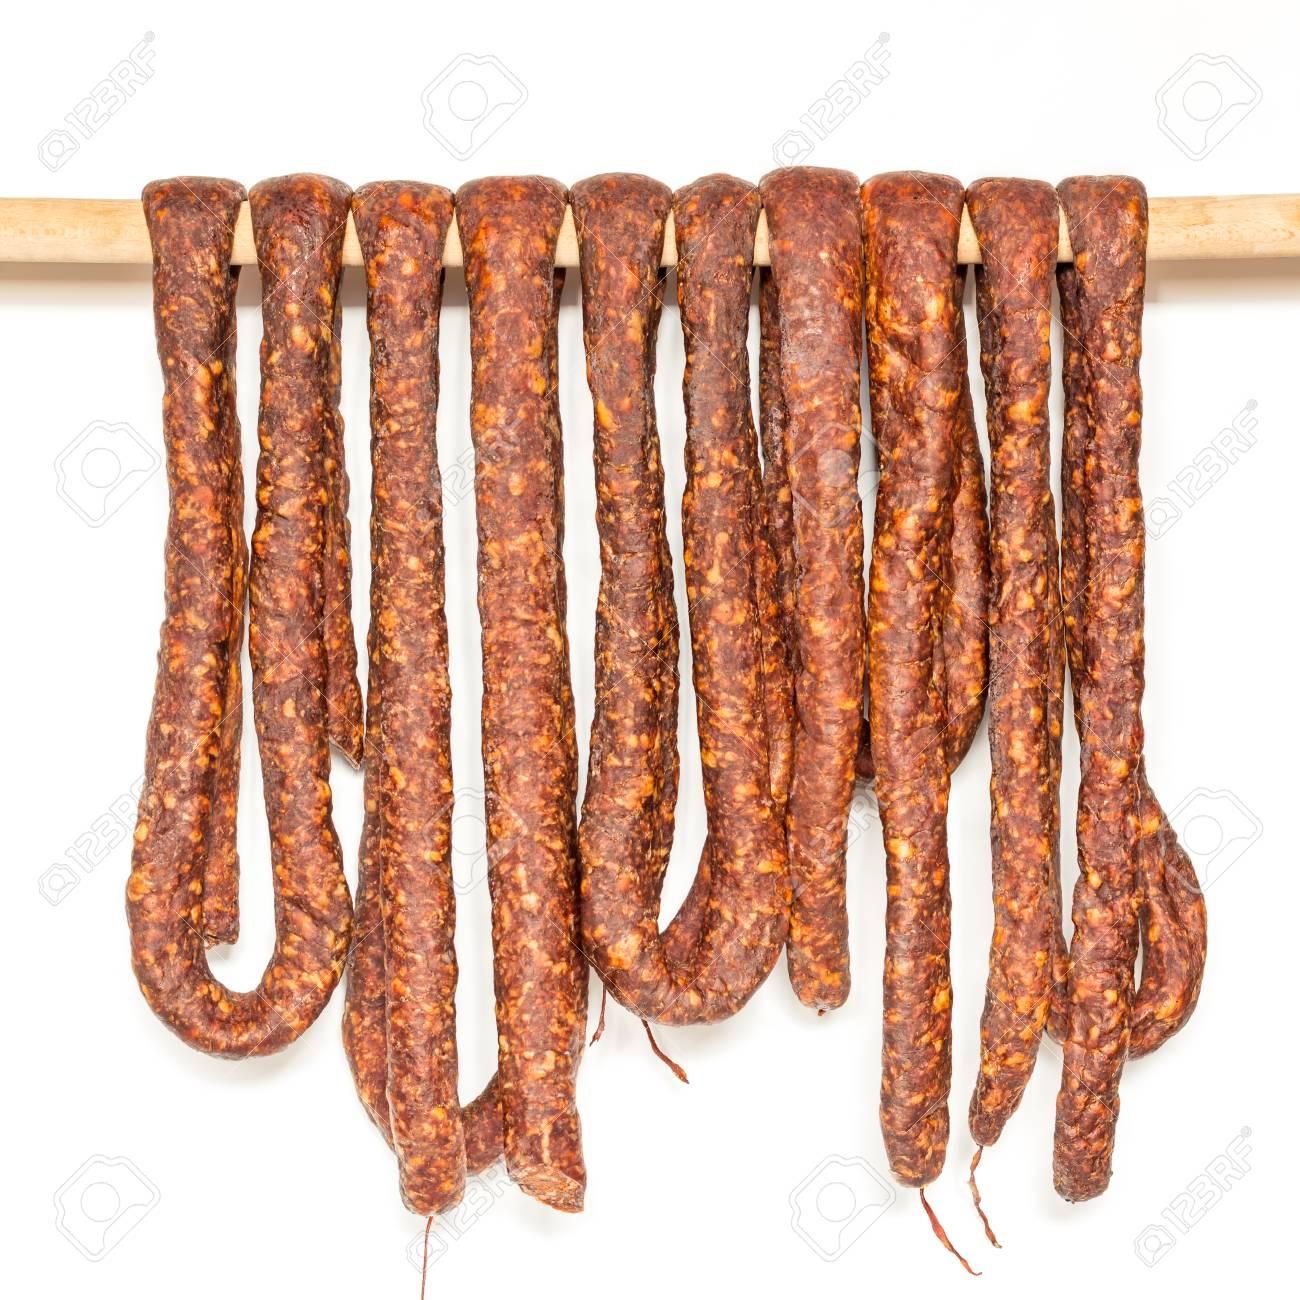 Row of smoked pork sausage in natural casings hanging on a wooden